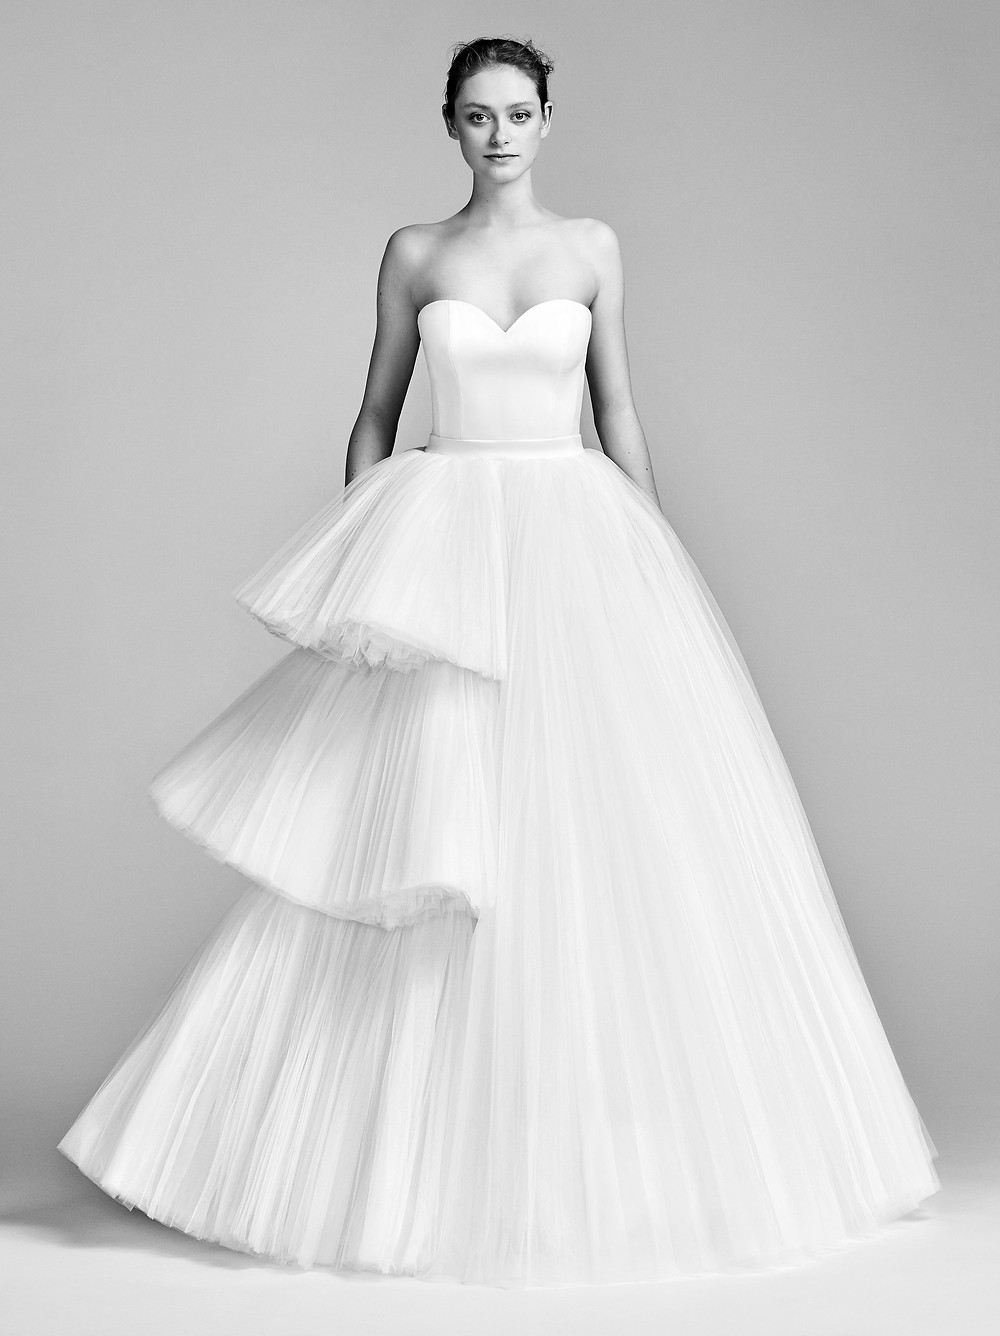 A Viktor & Rolf strapless ball gown wedding dress with a layered tulle skirt and sweetheart neckline